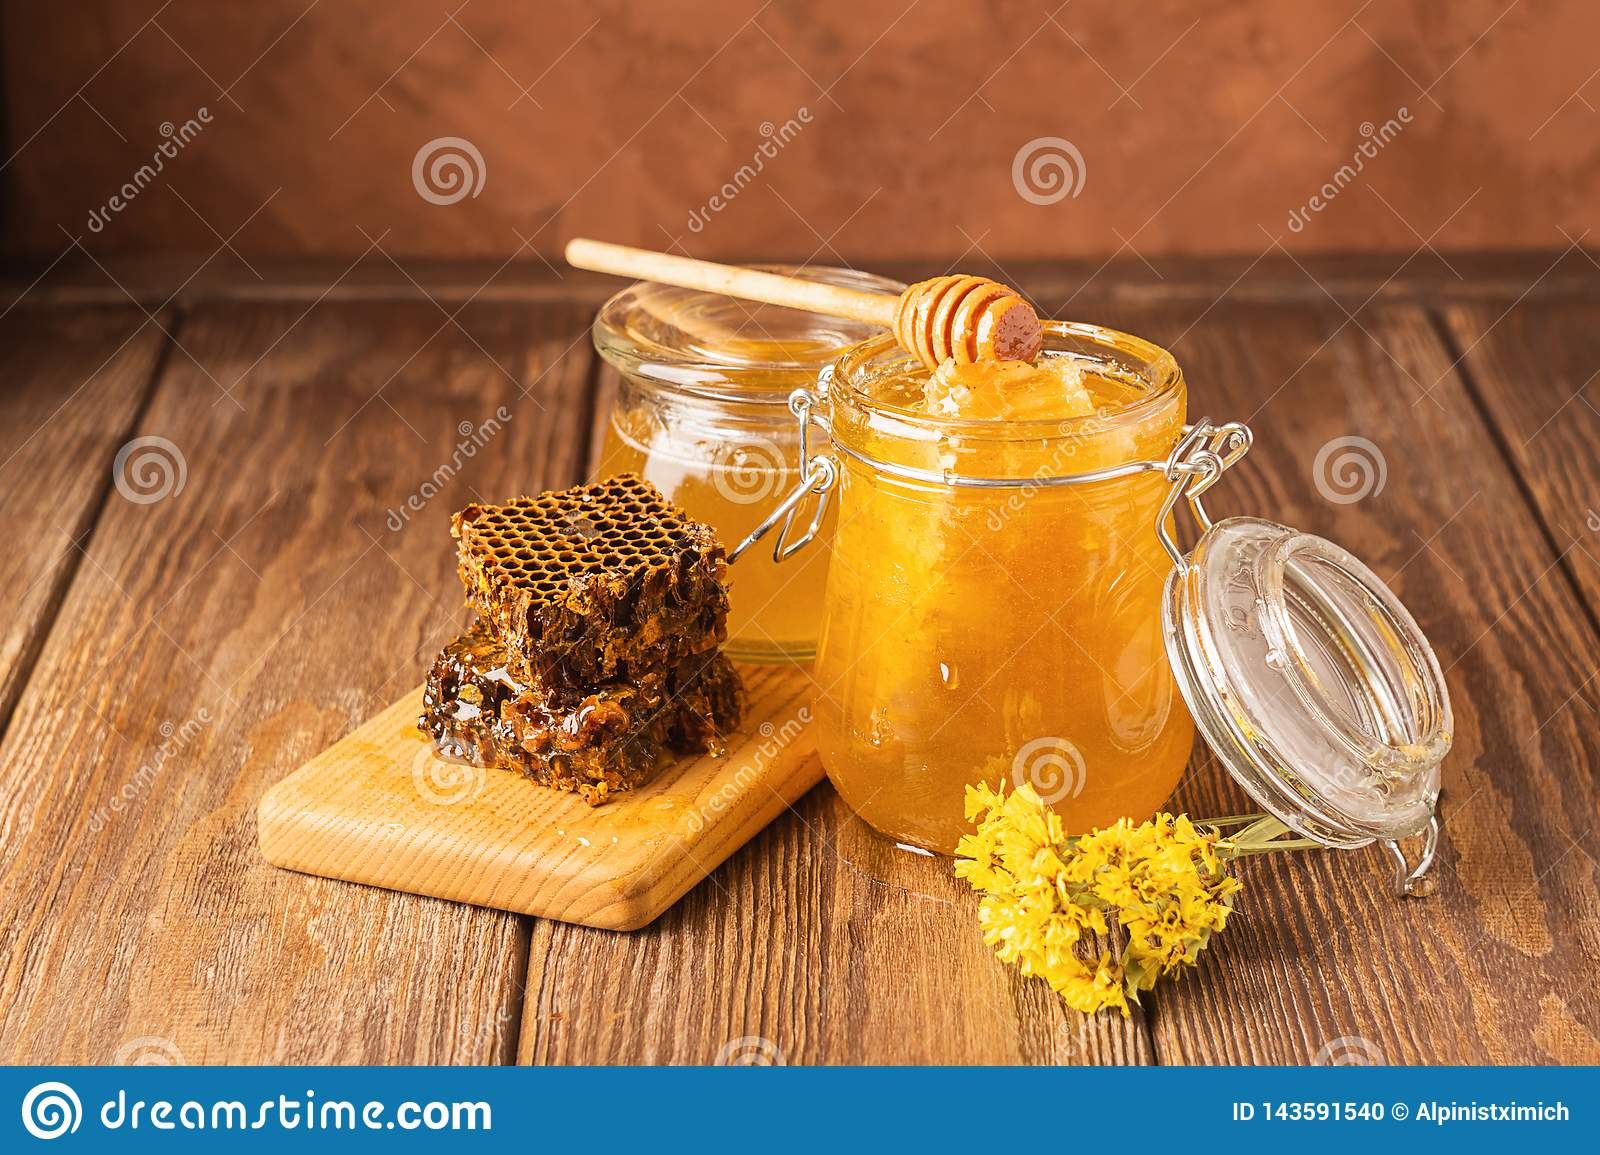 Fresh fragrant honey in a glass jar on a wooden background on the table. Different types of bee honey. Natural products.